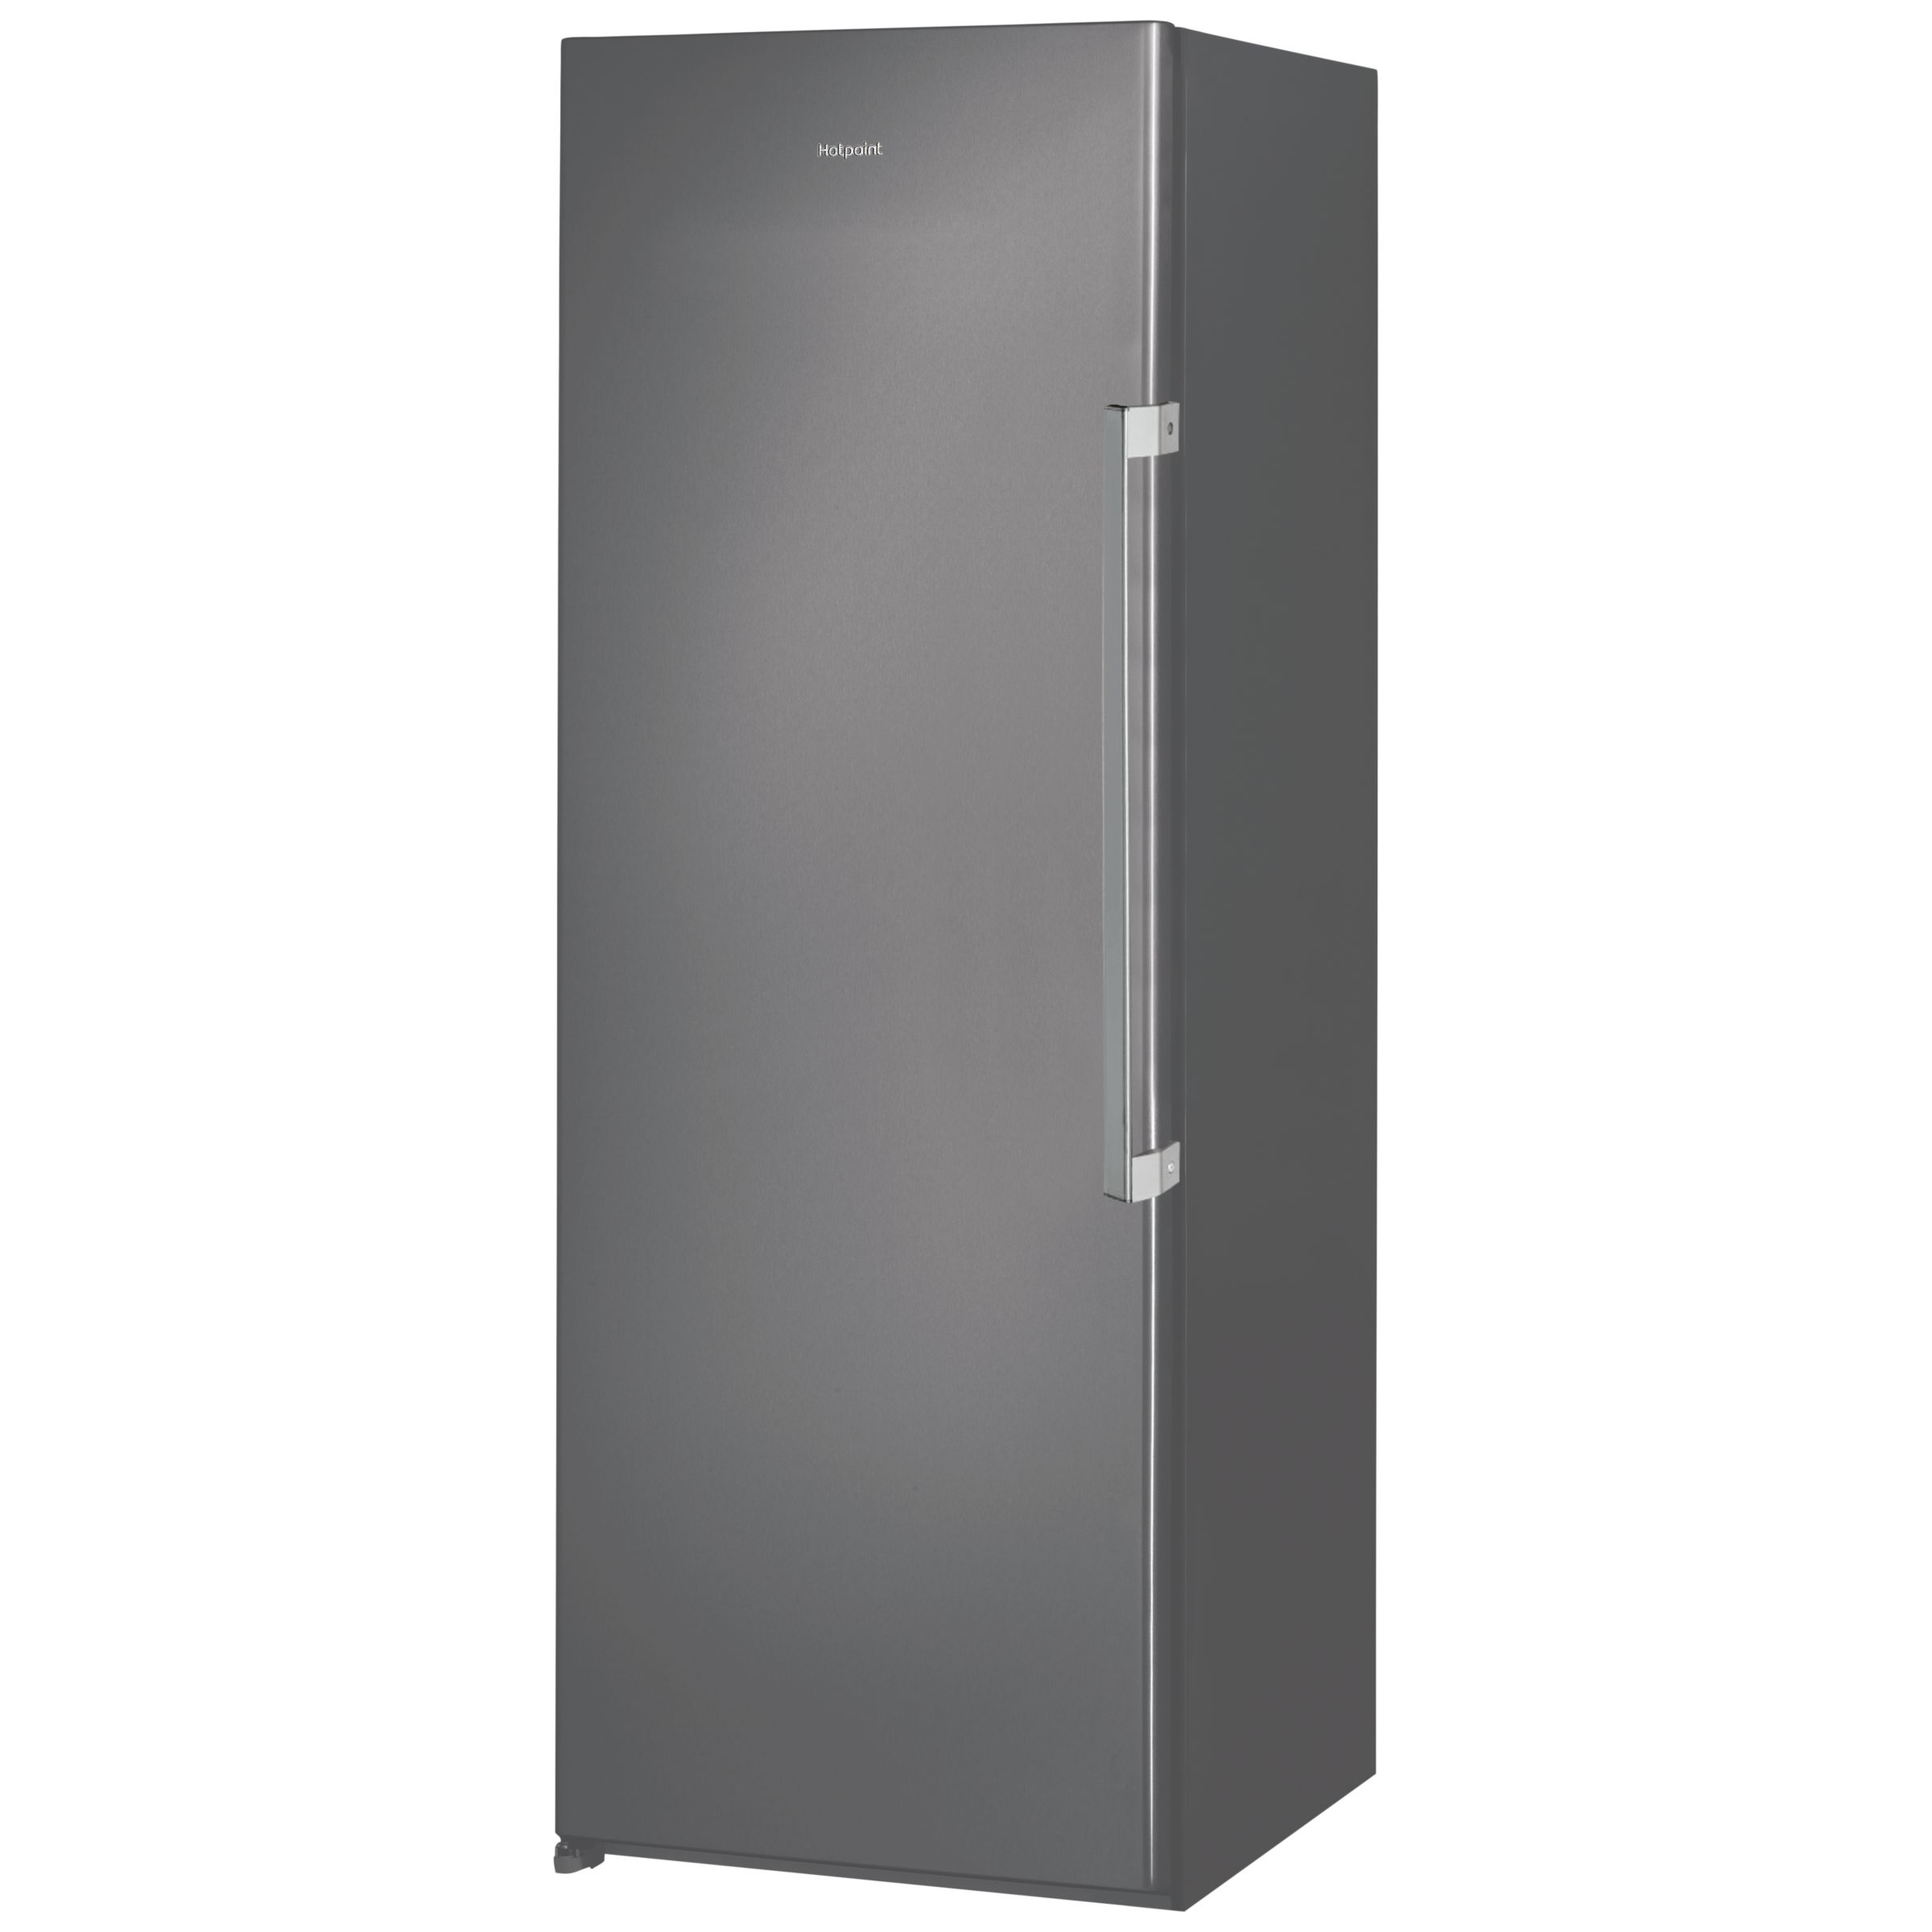 Hotpoint Hotpoint UH6F1CGUK.1 Freestanding Freezer, A+ Energy Rating, 59.5cm Wide, Graphite